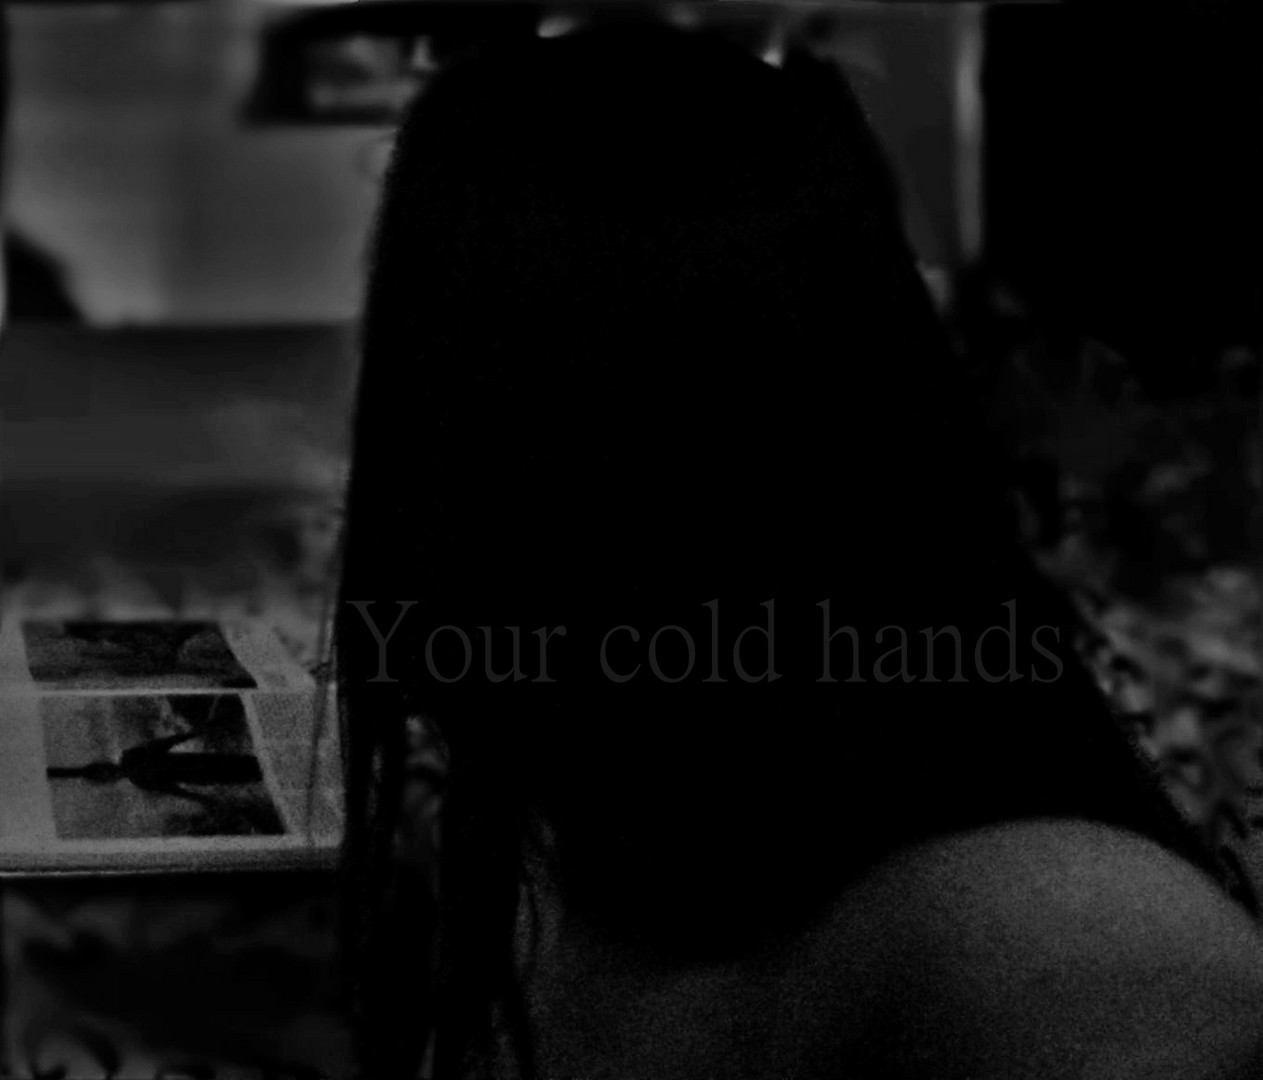 Your cold hands